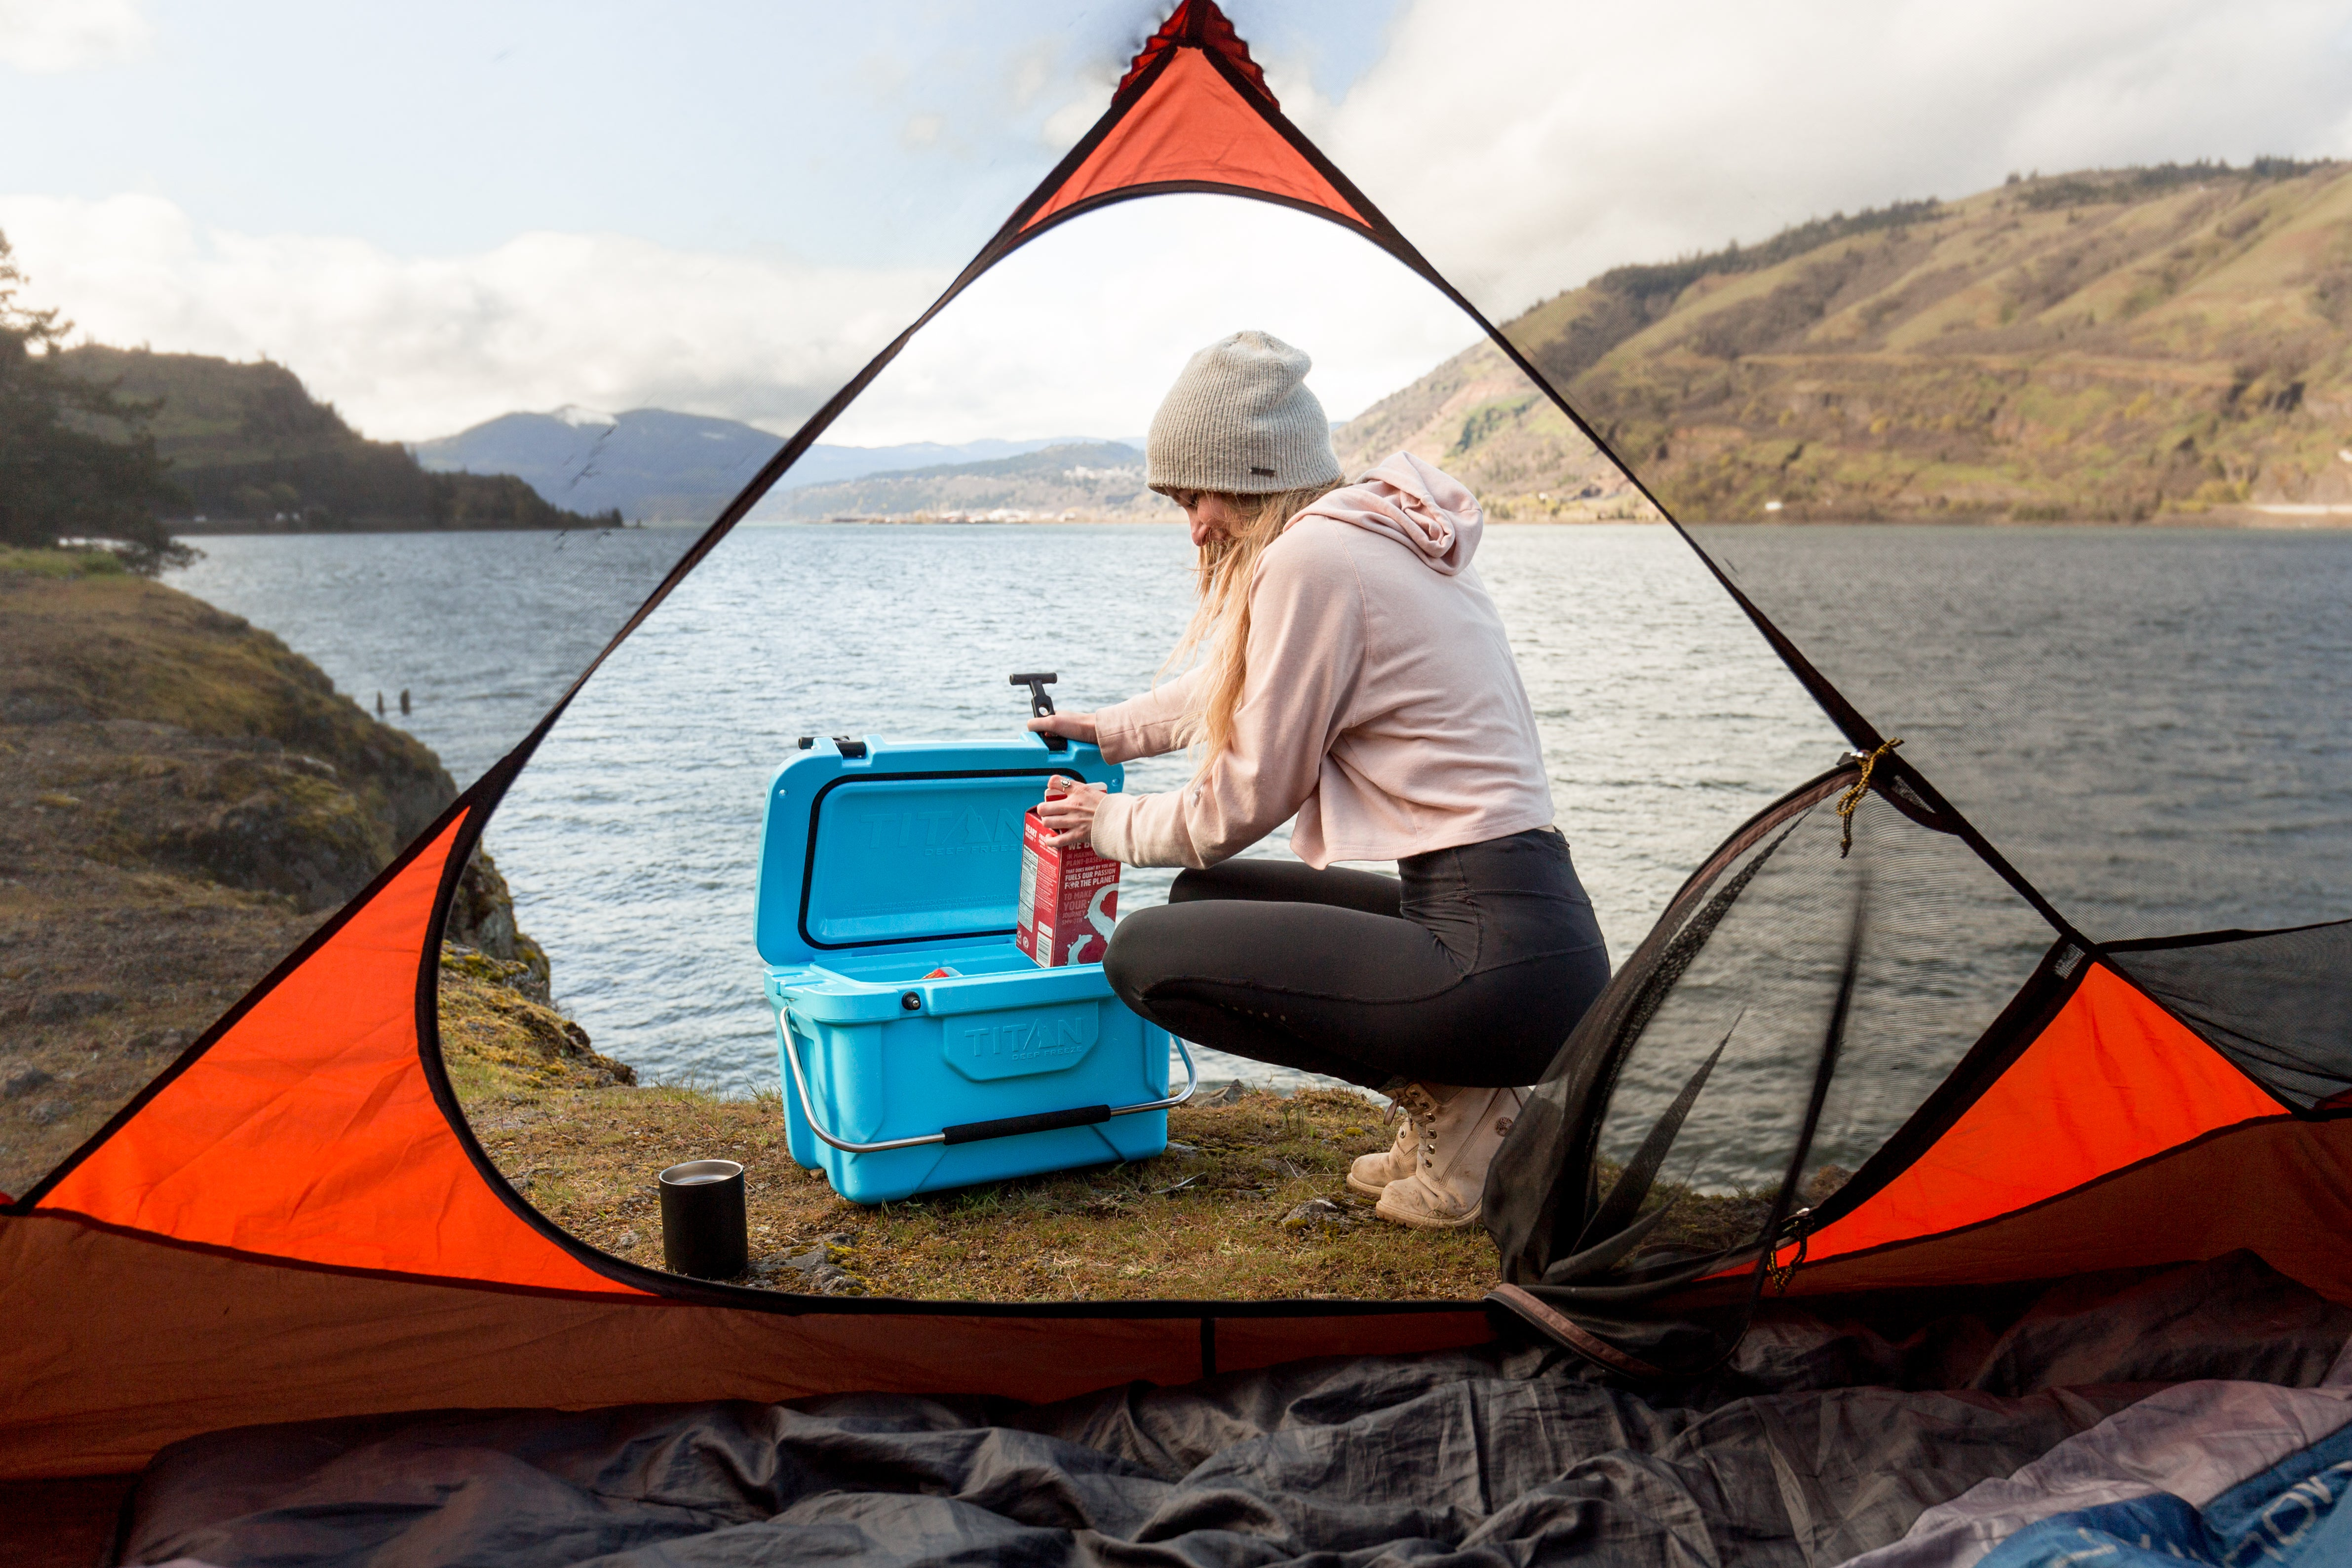 Camping with Arctic Zone - packing milk into the cooler, view from inside the tent - Best coolers for camping